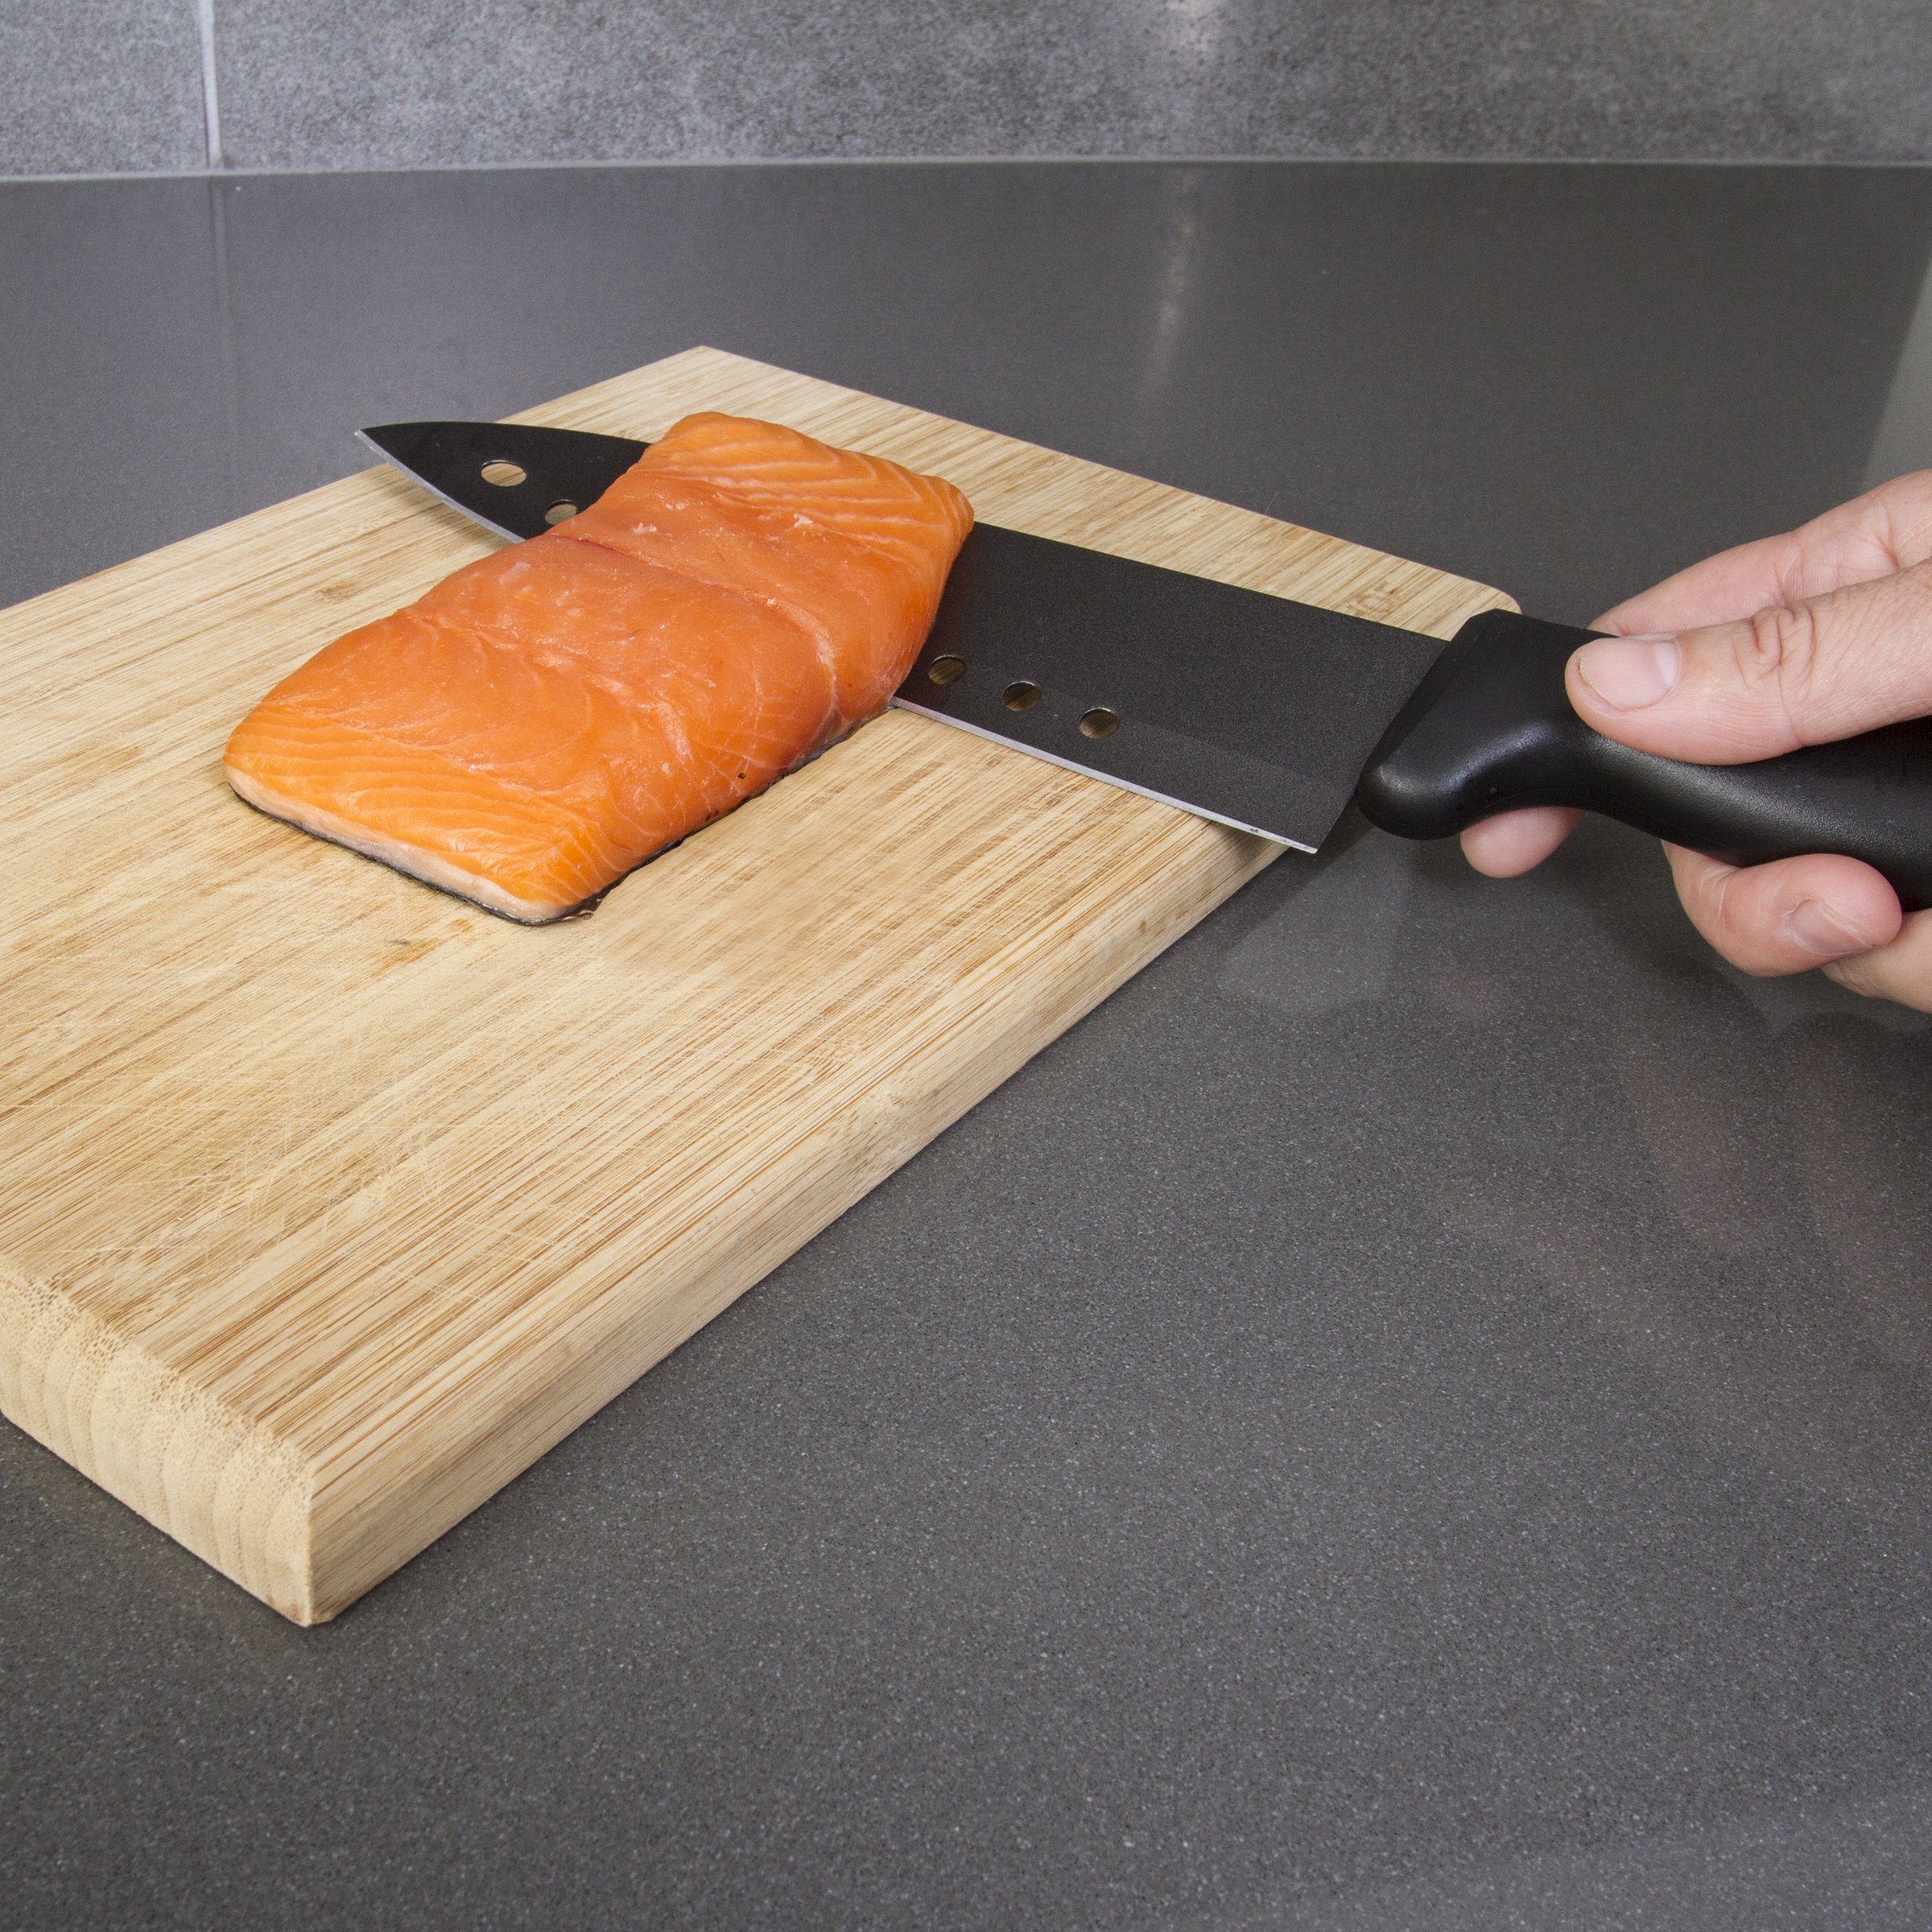 Kitchen + Home Non Stick Sushi Knife - The Original 8 inch Stainless Steel Non Stick Multipurpose Chef Knife by Kitchen + Home (Image #3)